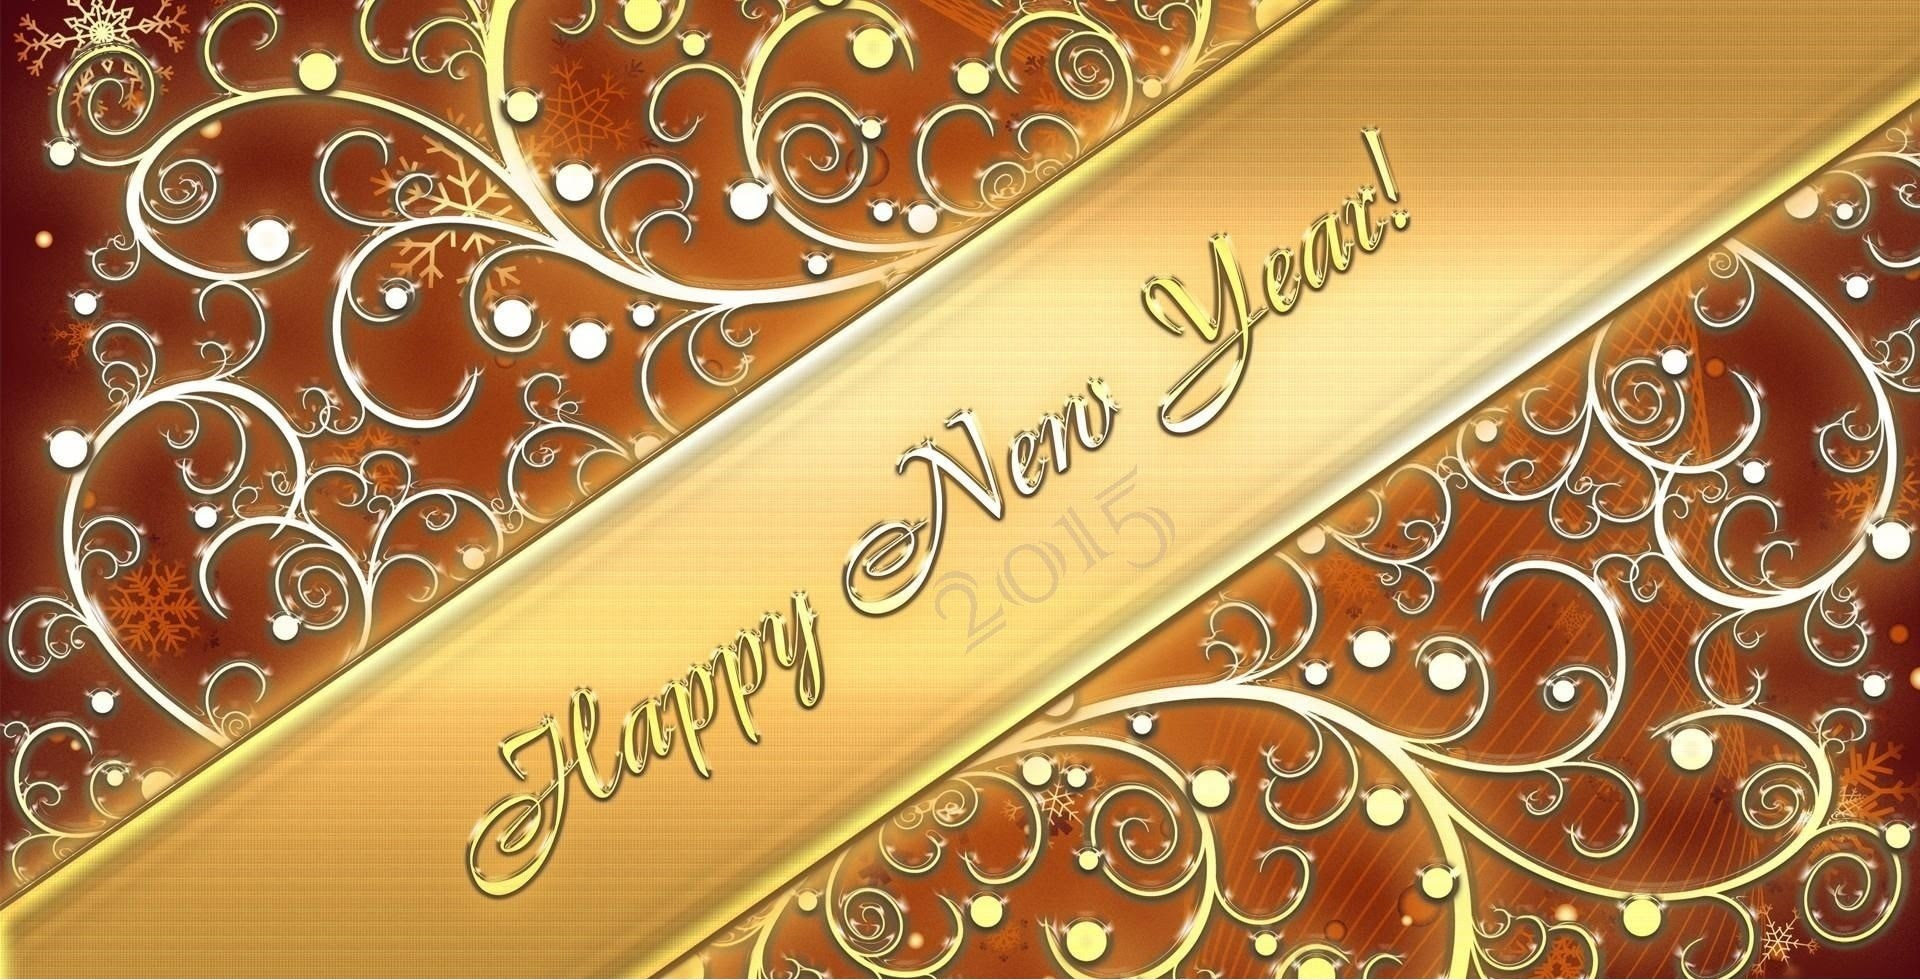 Happy New Year Latest Images 95